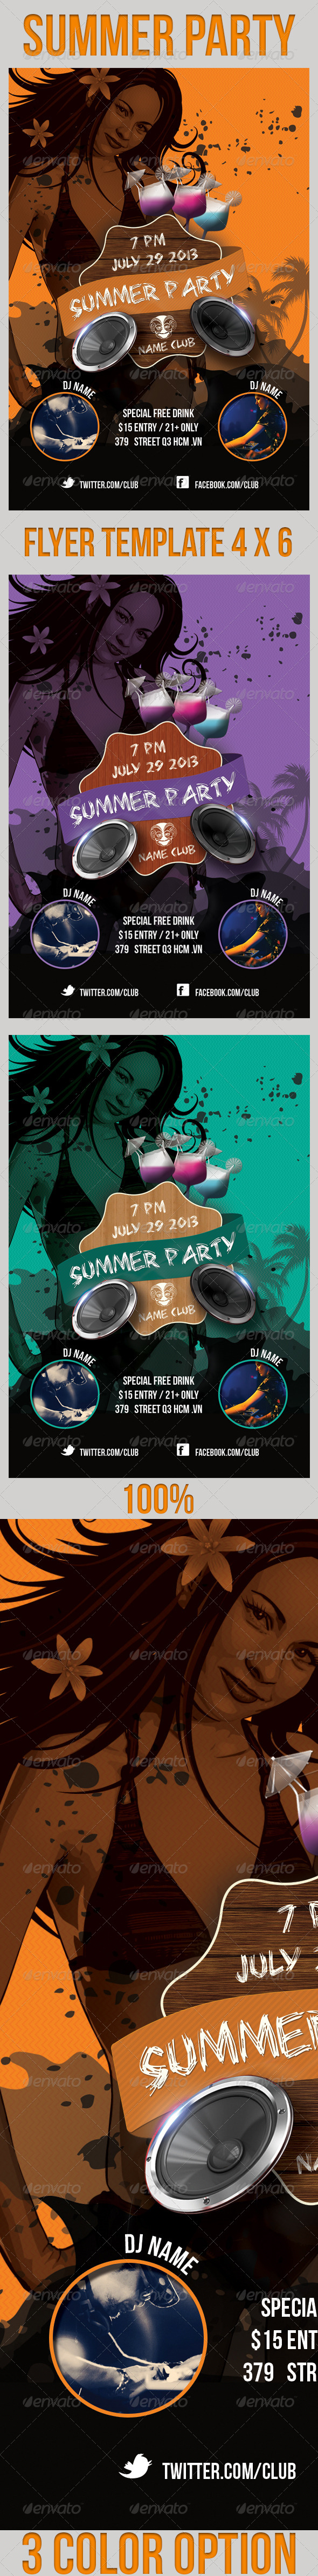 Summer Party Flyers Template - Clubs & Parties Events